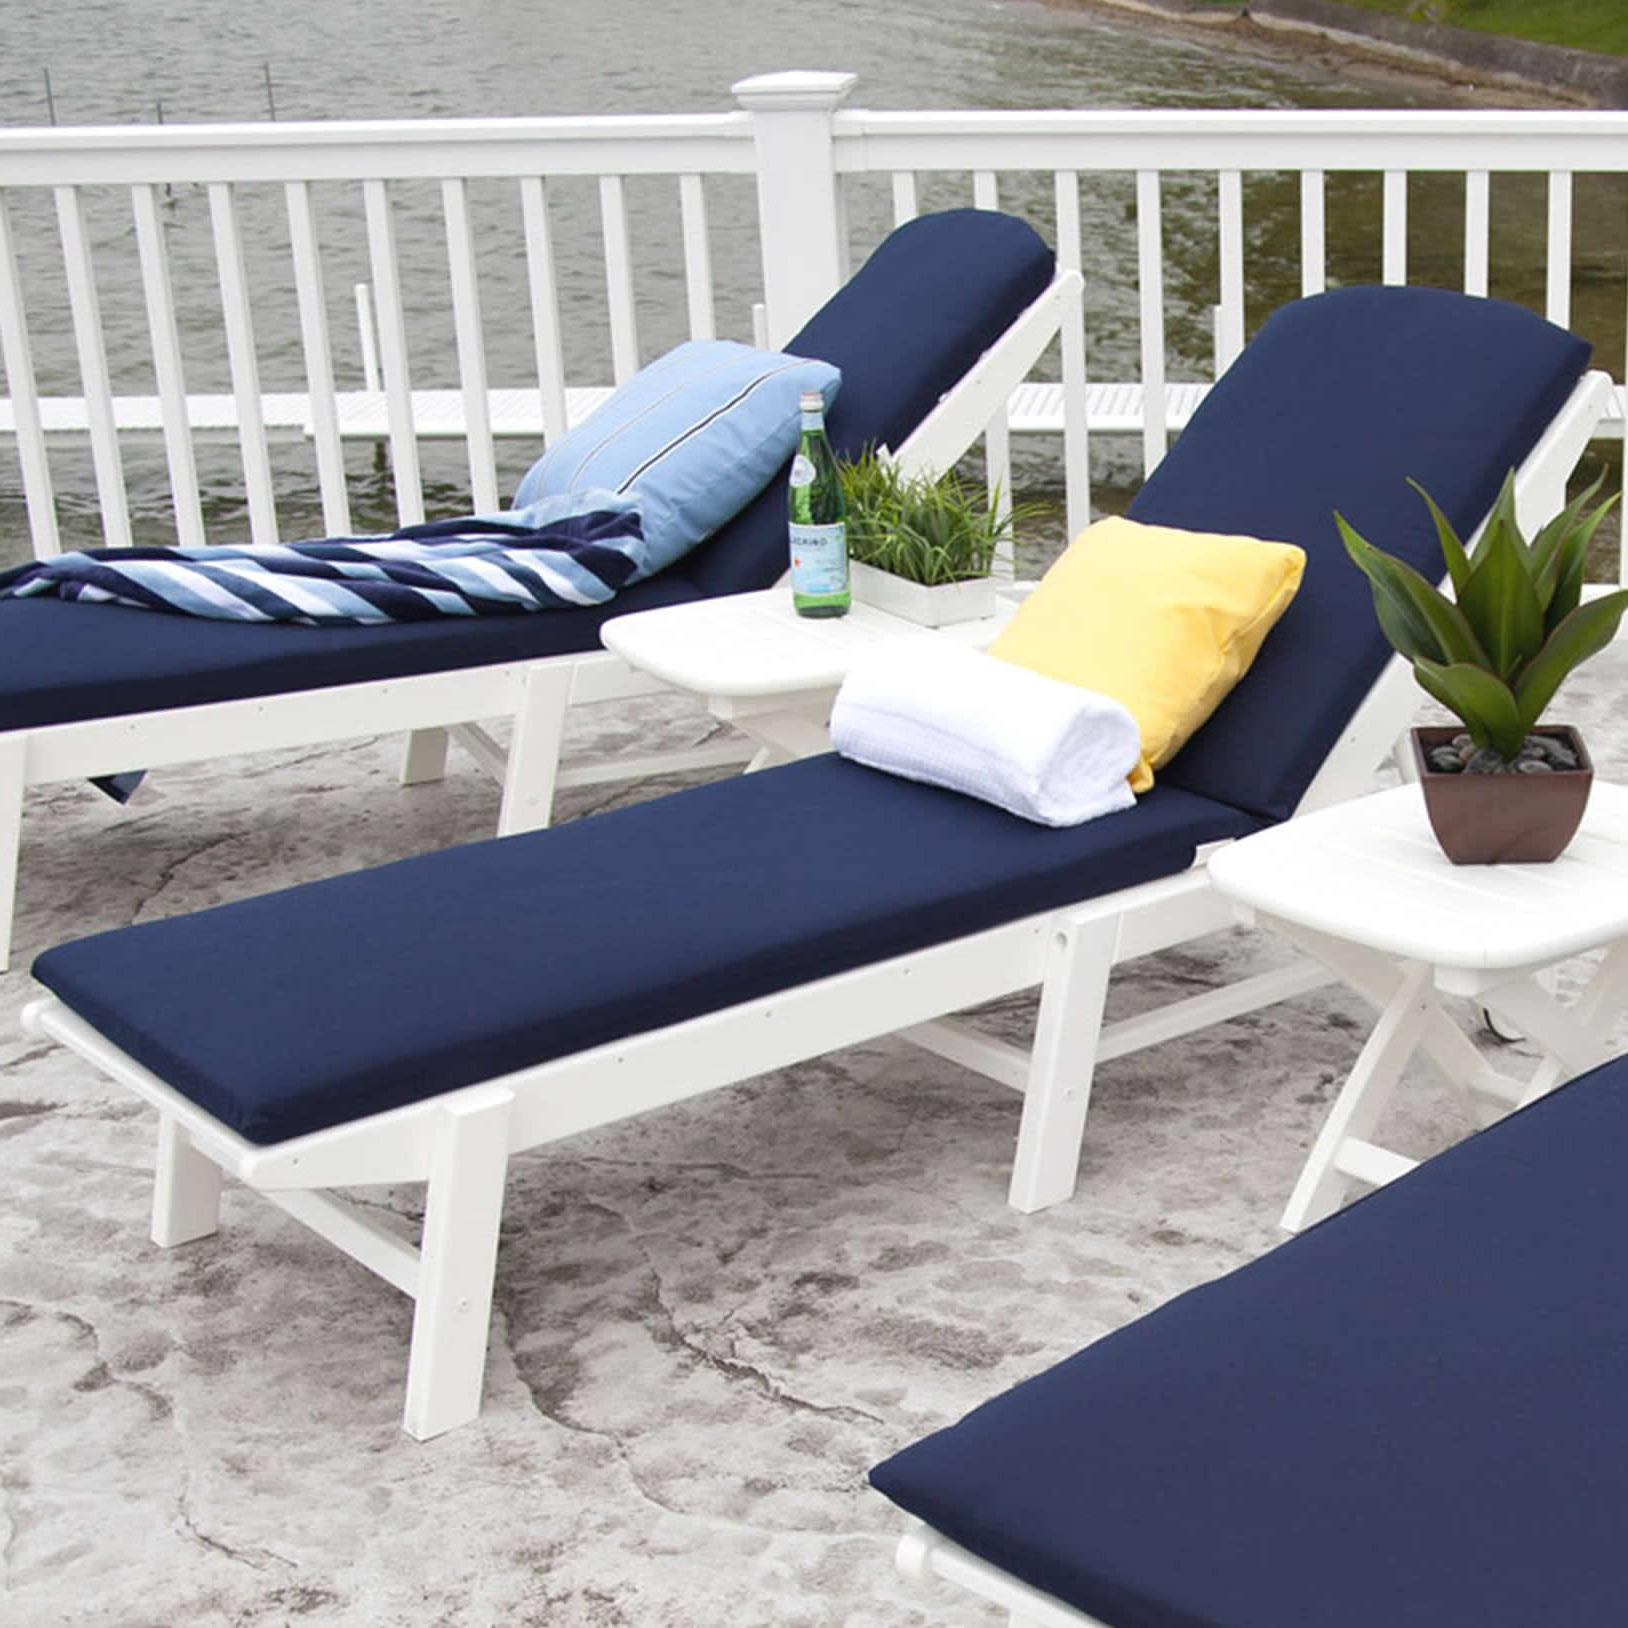 Well Known Nautical Outdoor Chaise Lounges With Arms Throughout Polywood Nautical Chaise Lounge Cushions (View 25 of 25)